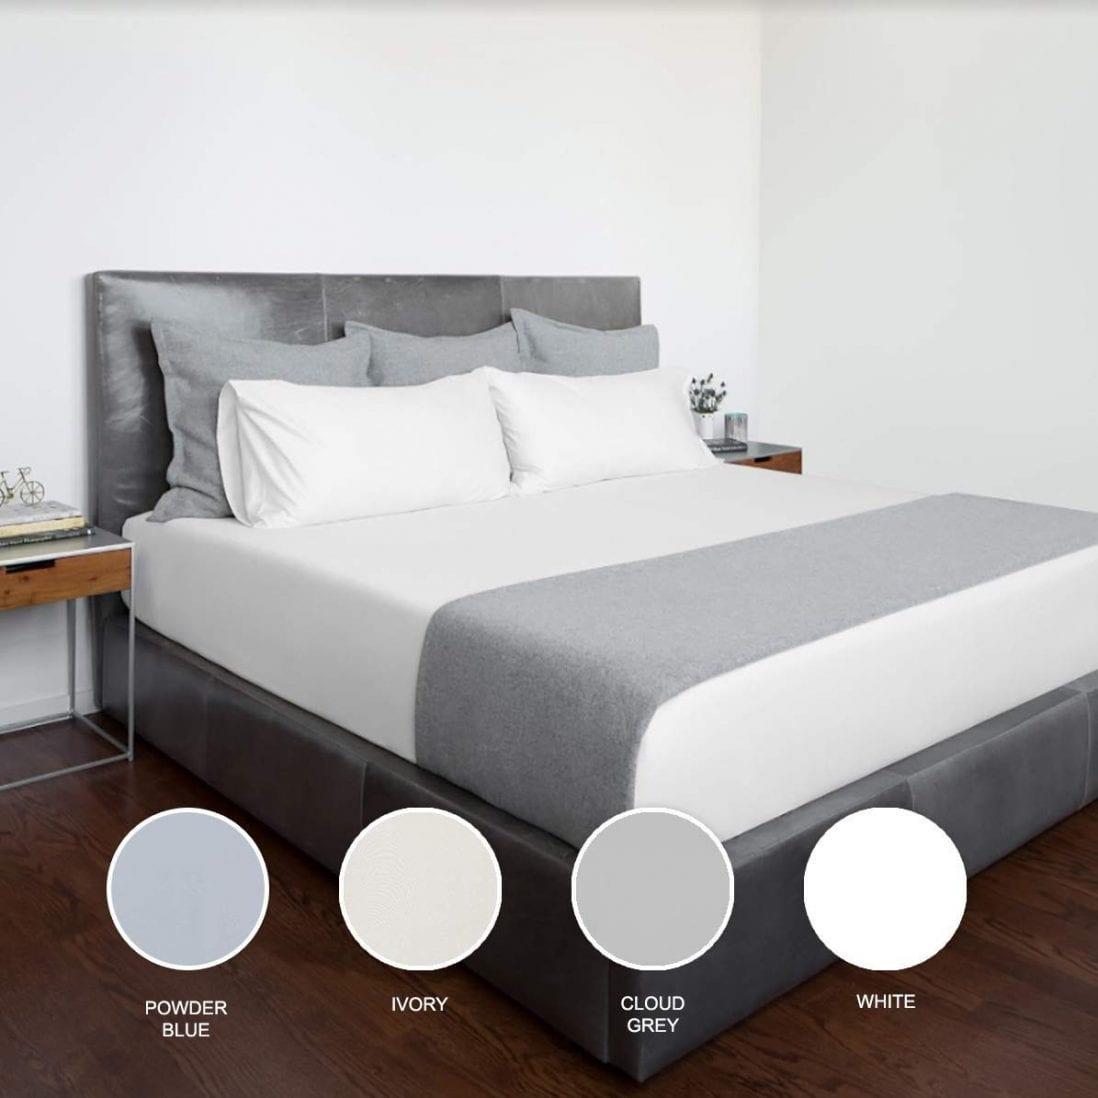 Molecule Best Tencel Sheets Review and Buying Guide by www.dailysleep.org